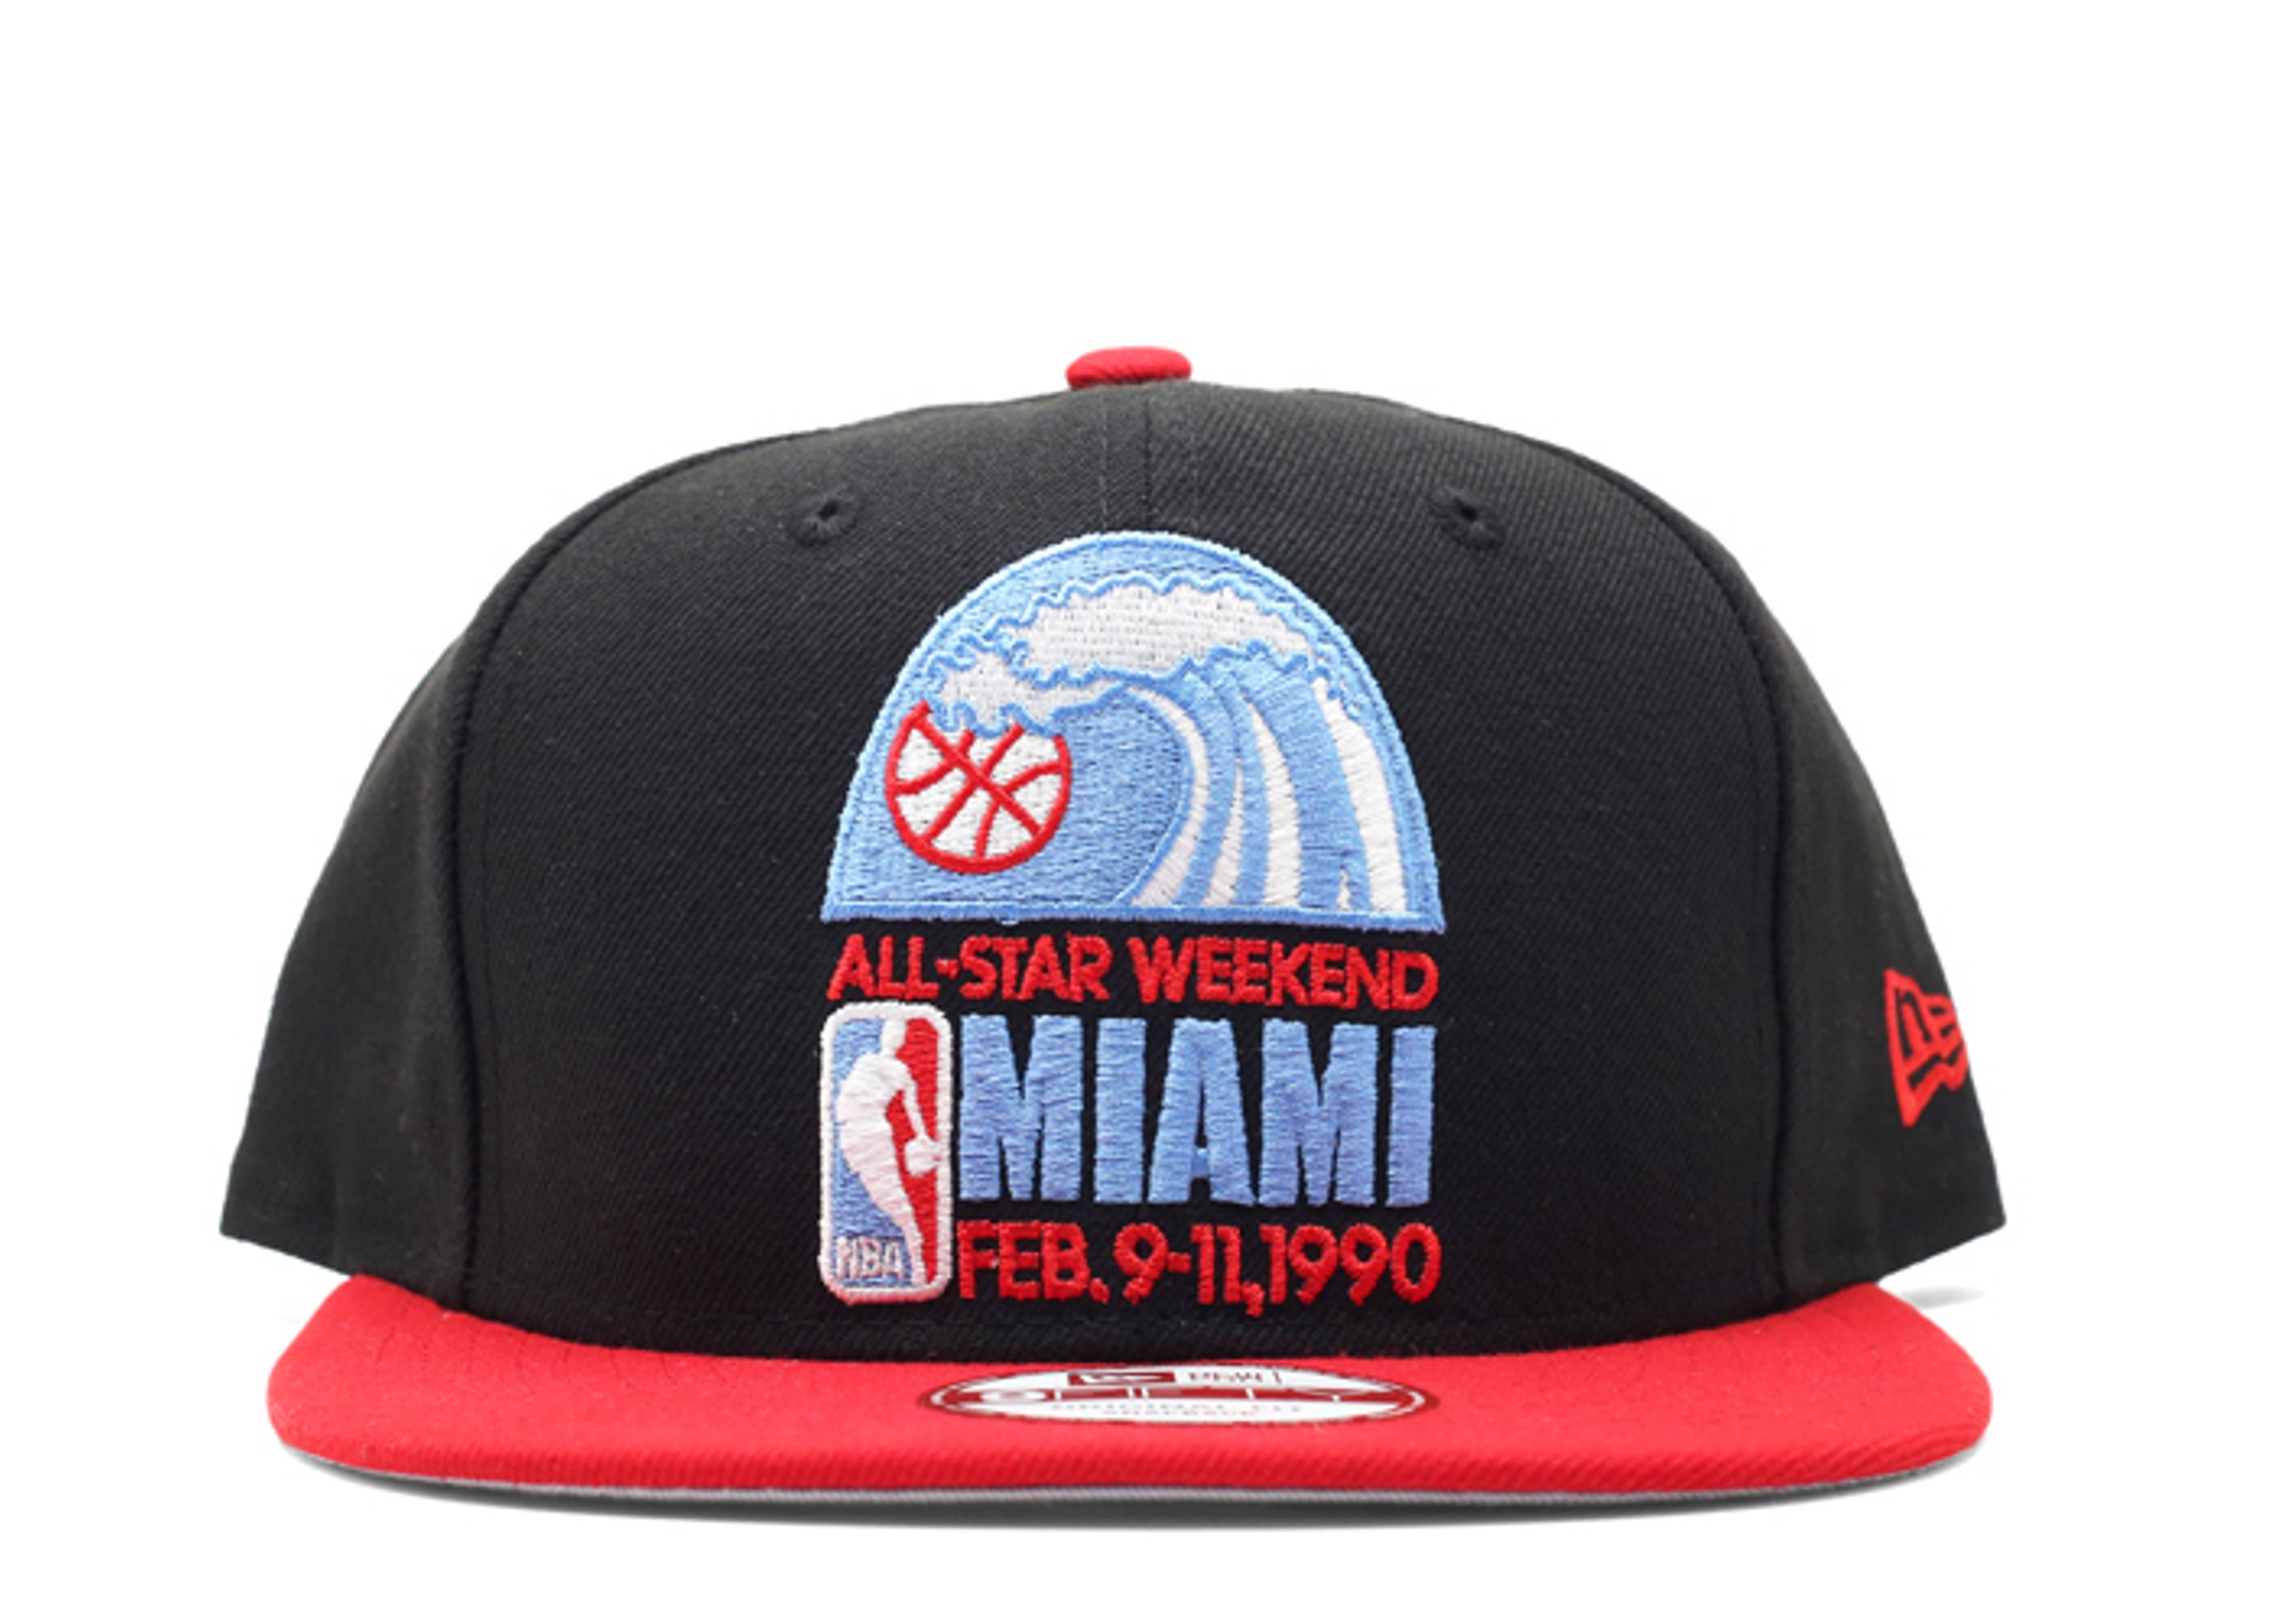 1990 all-star weekend snap-back